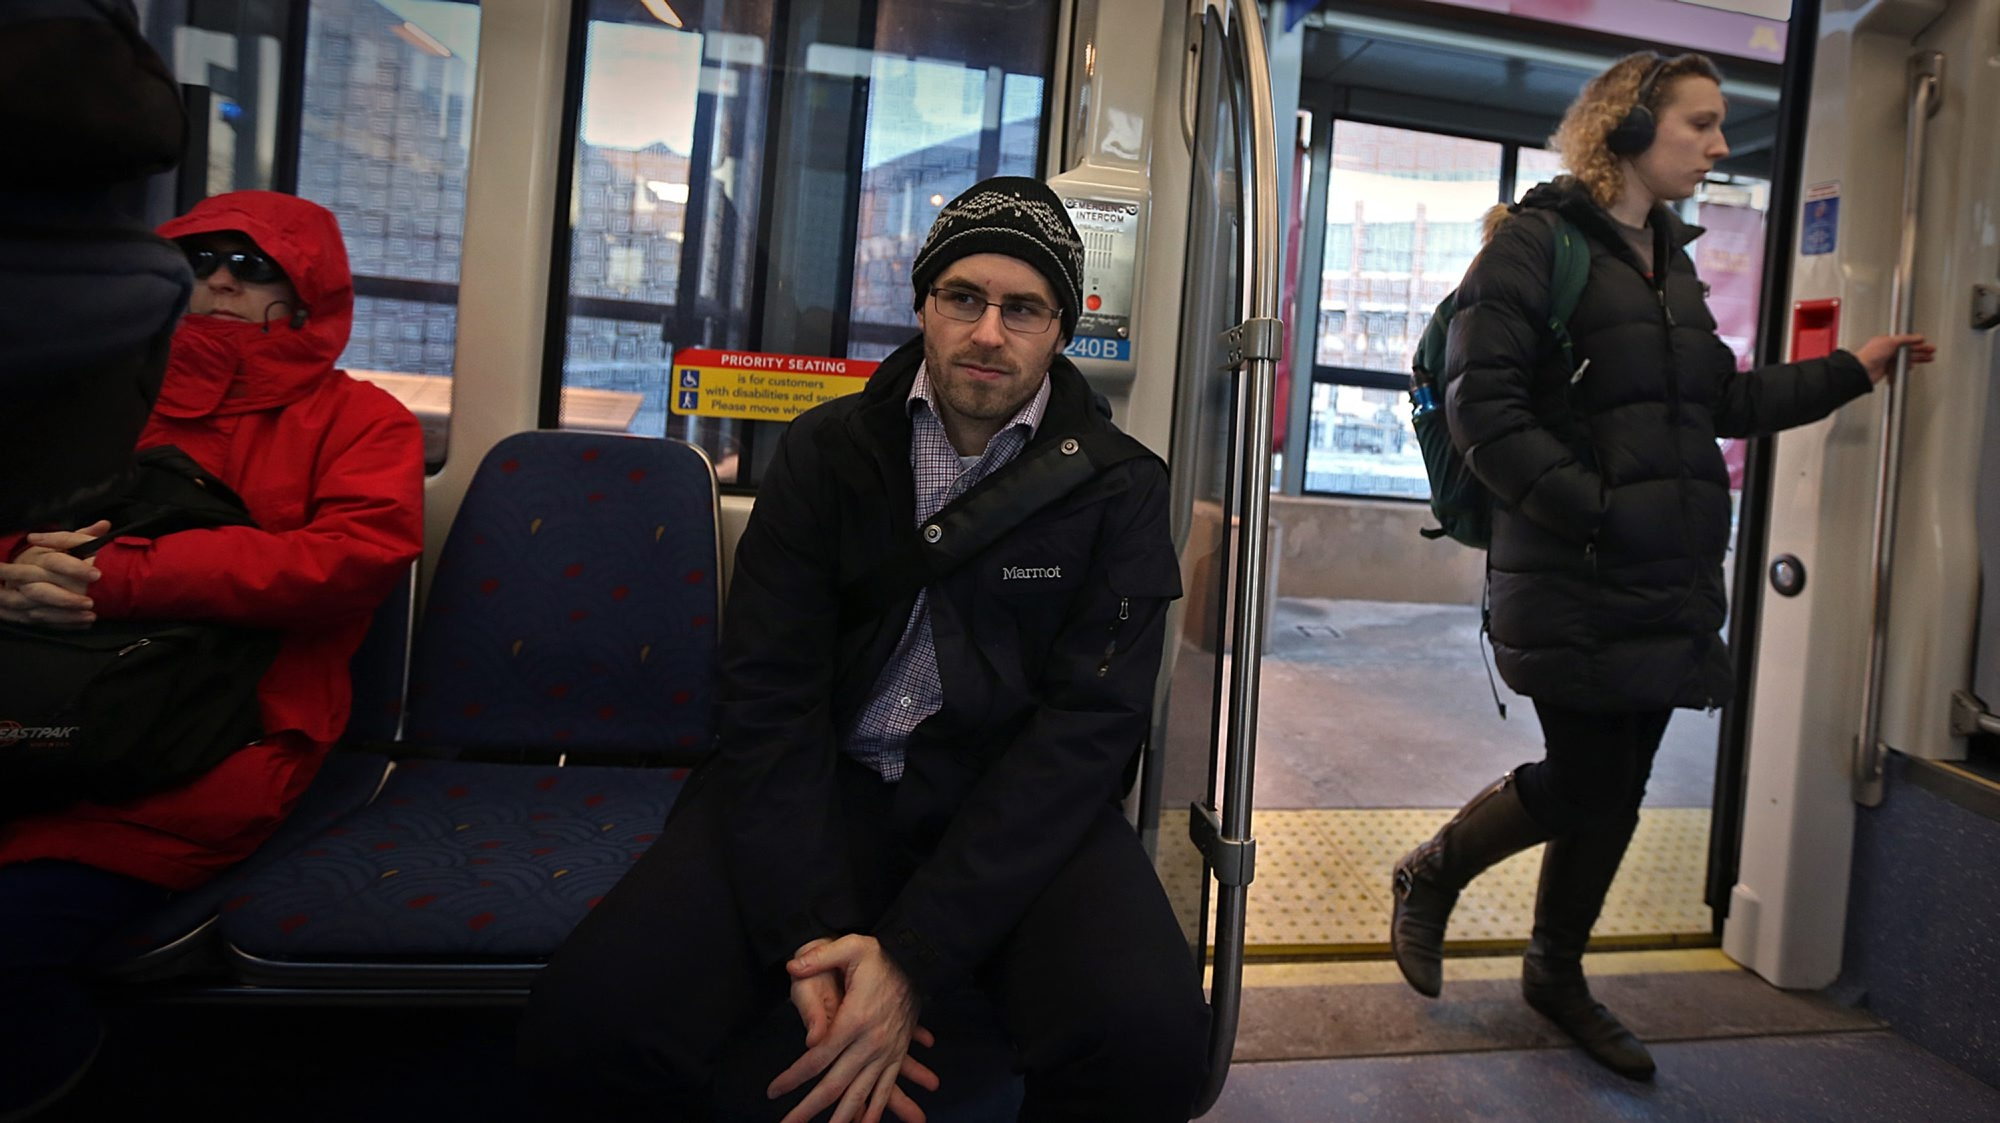 Jonathan Reiner and his girlfriend Emma Fazio, not pictured, are multi-modal millennial commuters. They board the Green Line every day -- she heads to St. Paul, and he goes to Minneapolis. (Jim Gehrz/Minneapolis Star Tribune/TNS)